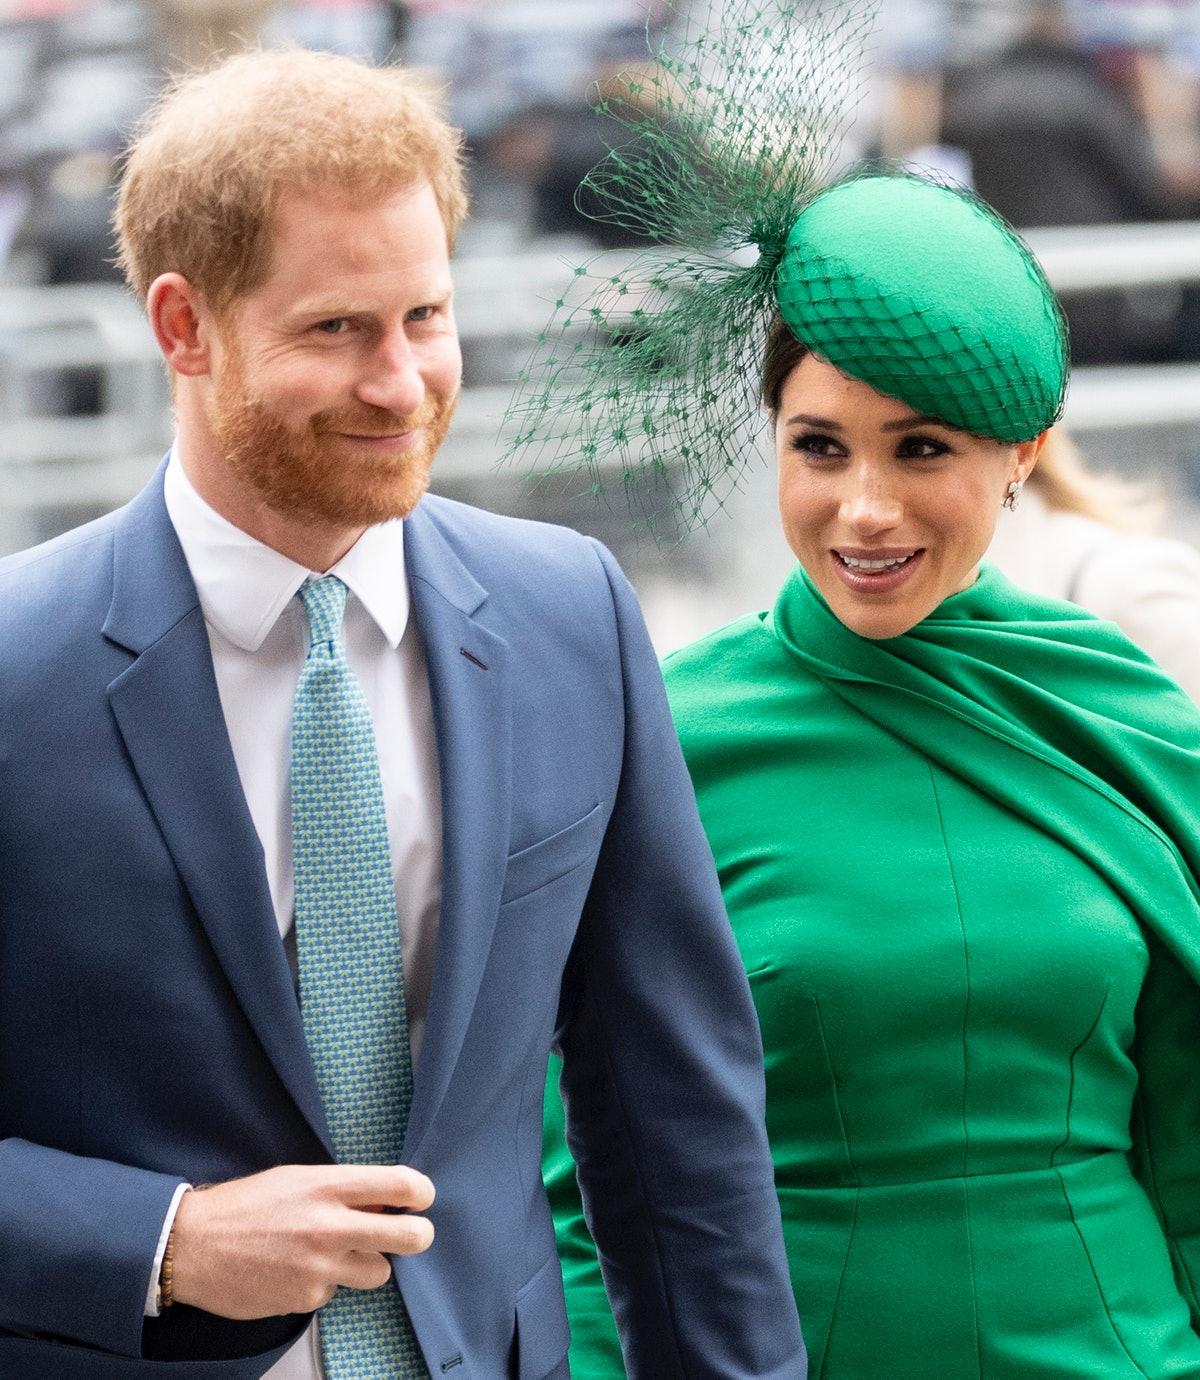 LONDON, ENGLAND - MARCH 09: Prince Harry, Duke of Sussex and Meghan, Duchess of Sussex attend the Commonwealth Day Service 2020 at Westminster Abbey on March 9, 2020 in London, England. (Photo by Mark Cuthbert/UK Press via Getty Images)